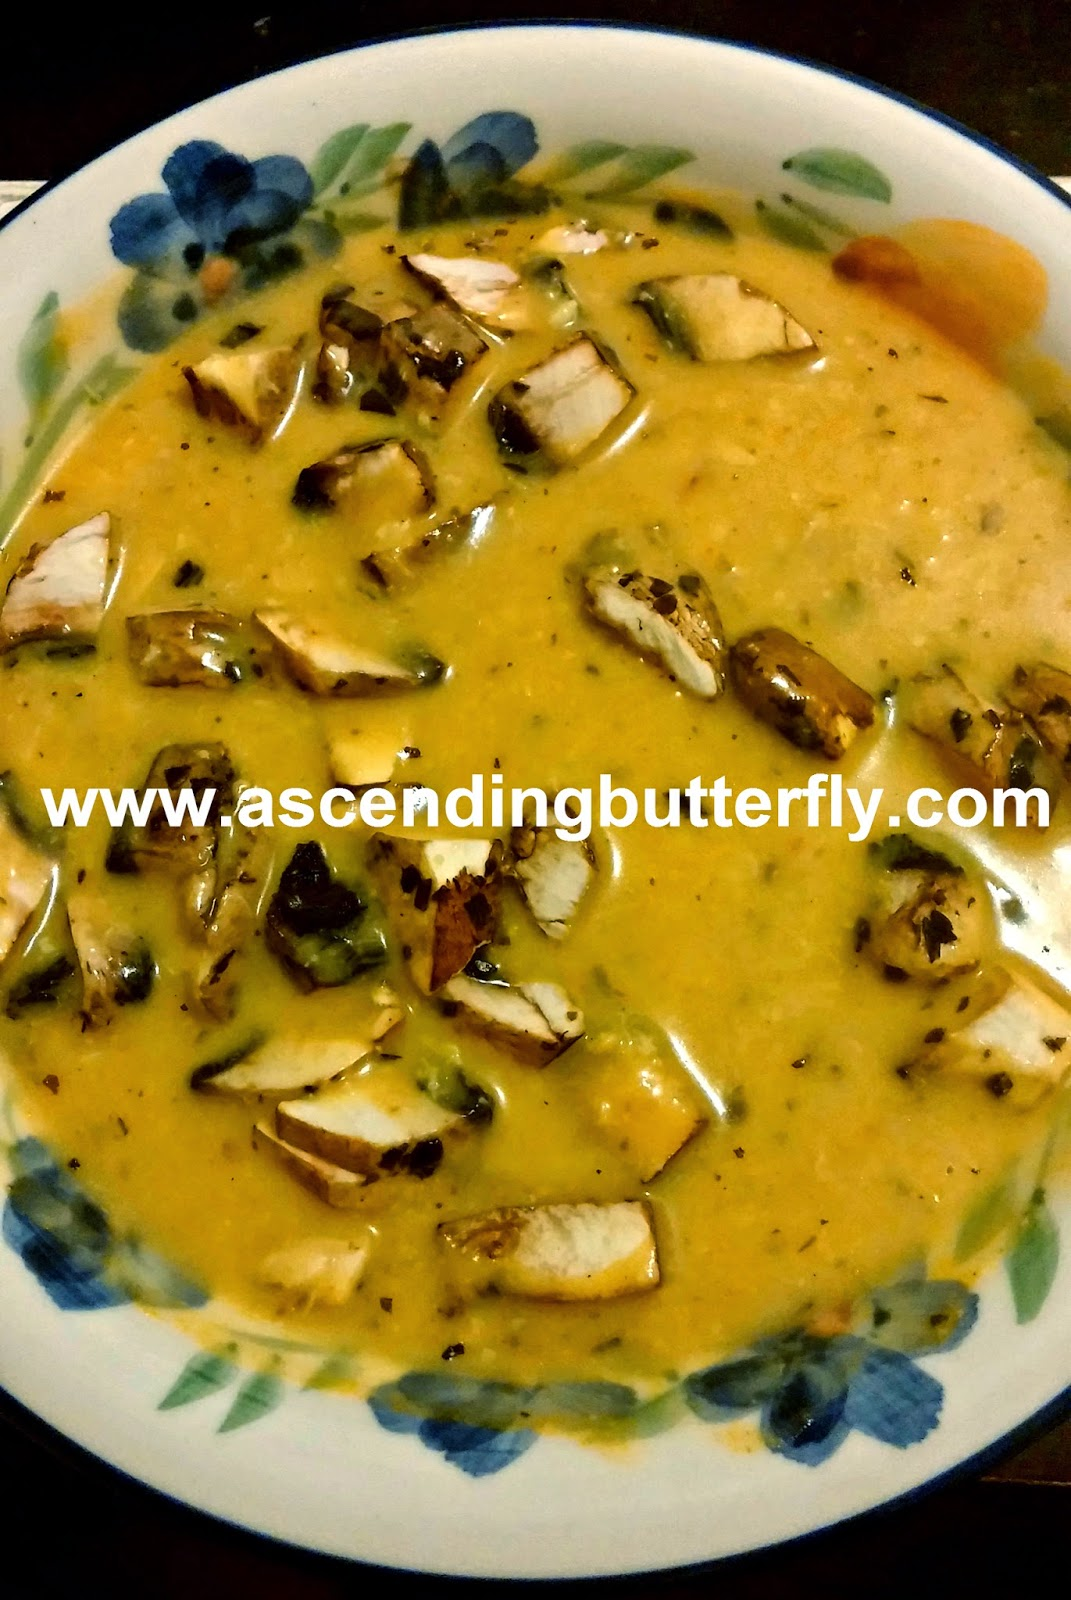 hearty seafood bisque with organic mushrooms